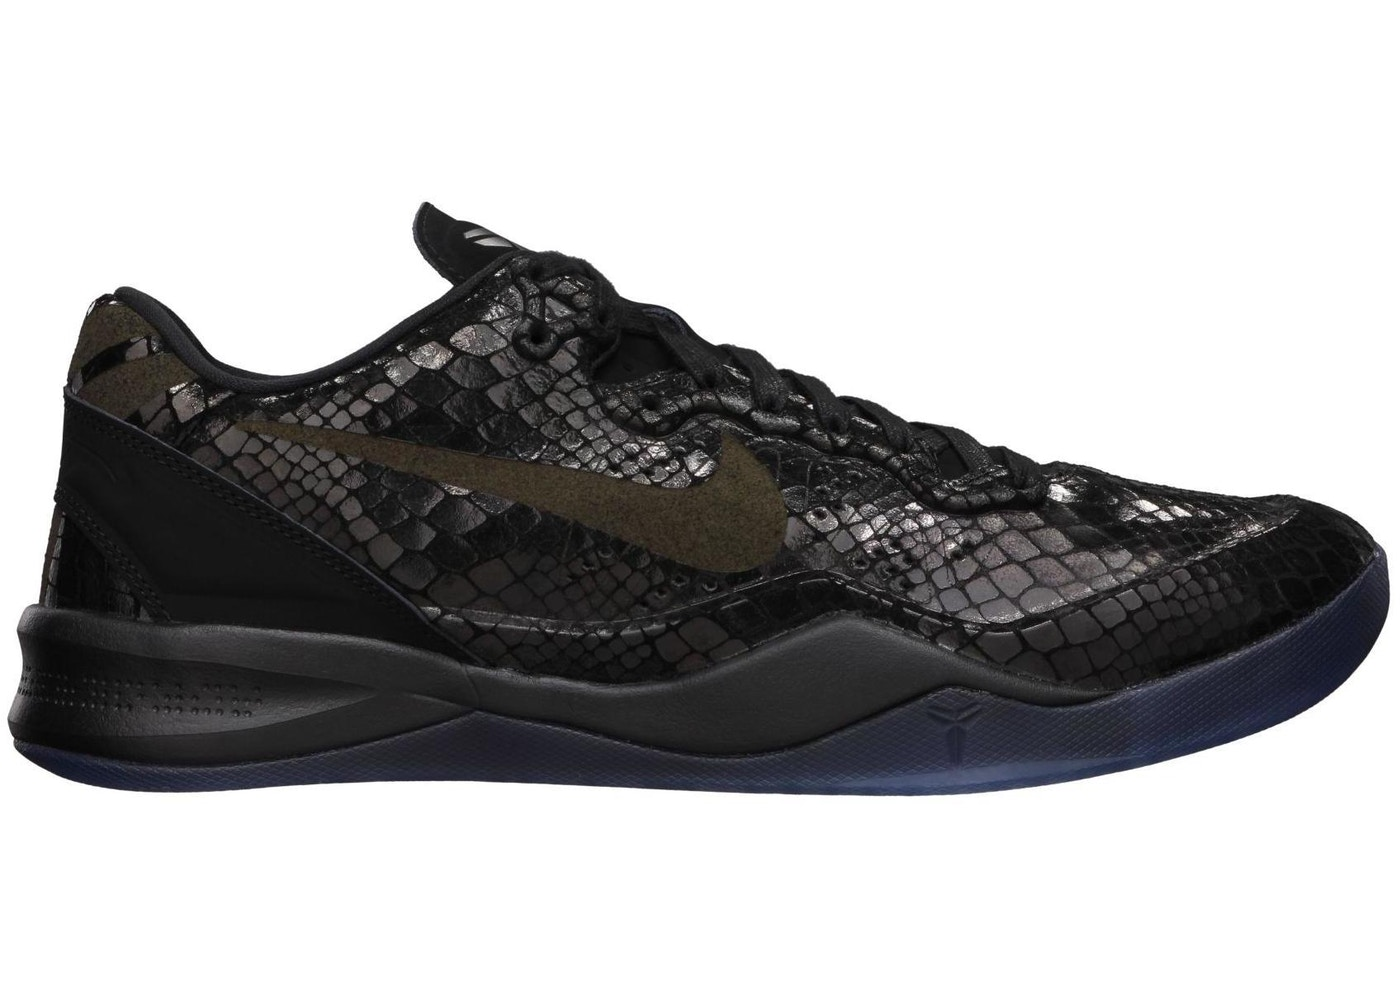 official photos a2fe3 4bb96 Kobe 8 EXT Year of the Snake (Black)